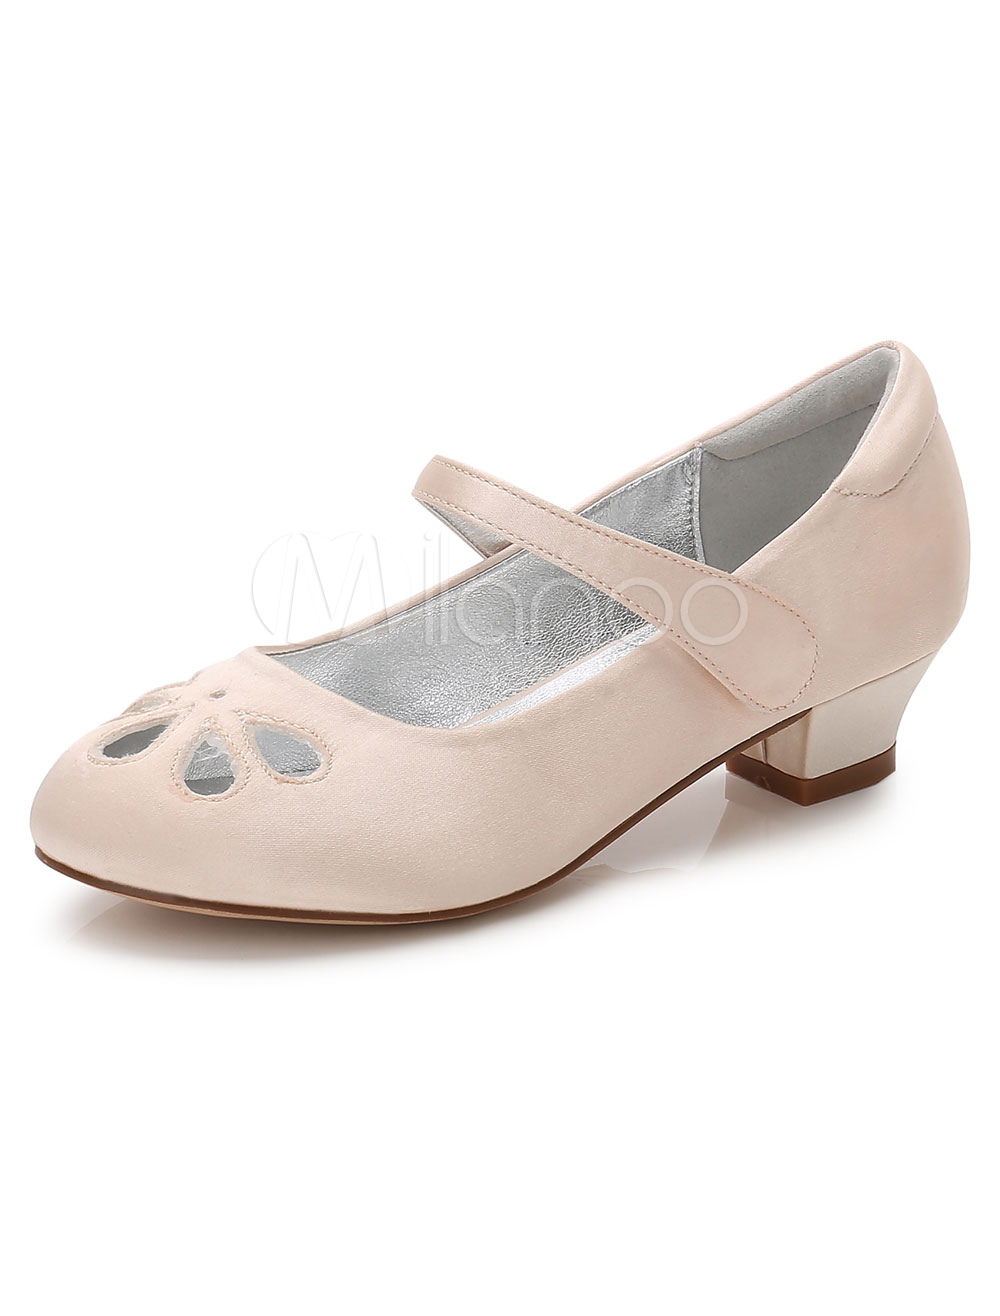 Champagne Flower Girls Shoes Chunky Heel Round Toe Cut Out Pumps thumbnail